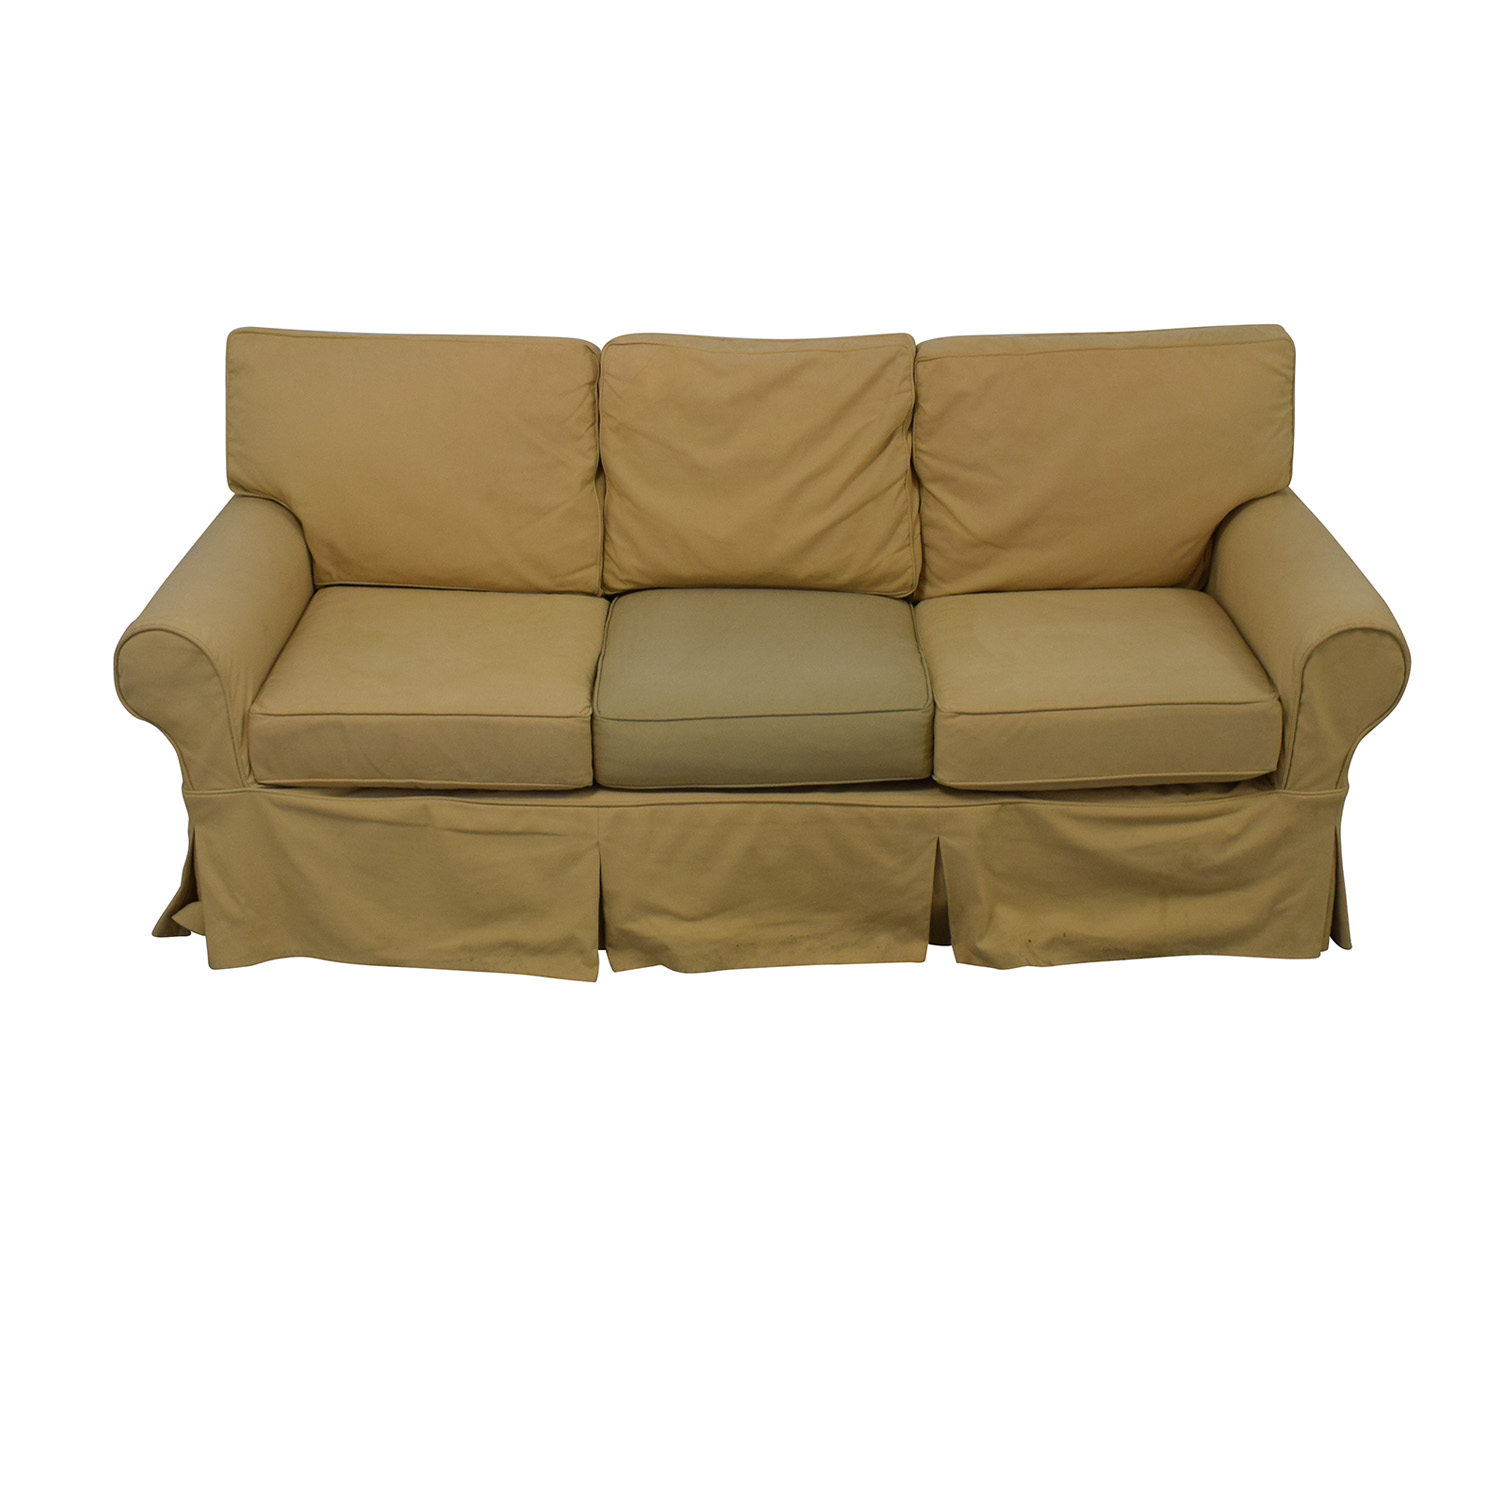 Pottery Barn PB Basic Slipcovered Sofa on sale